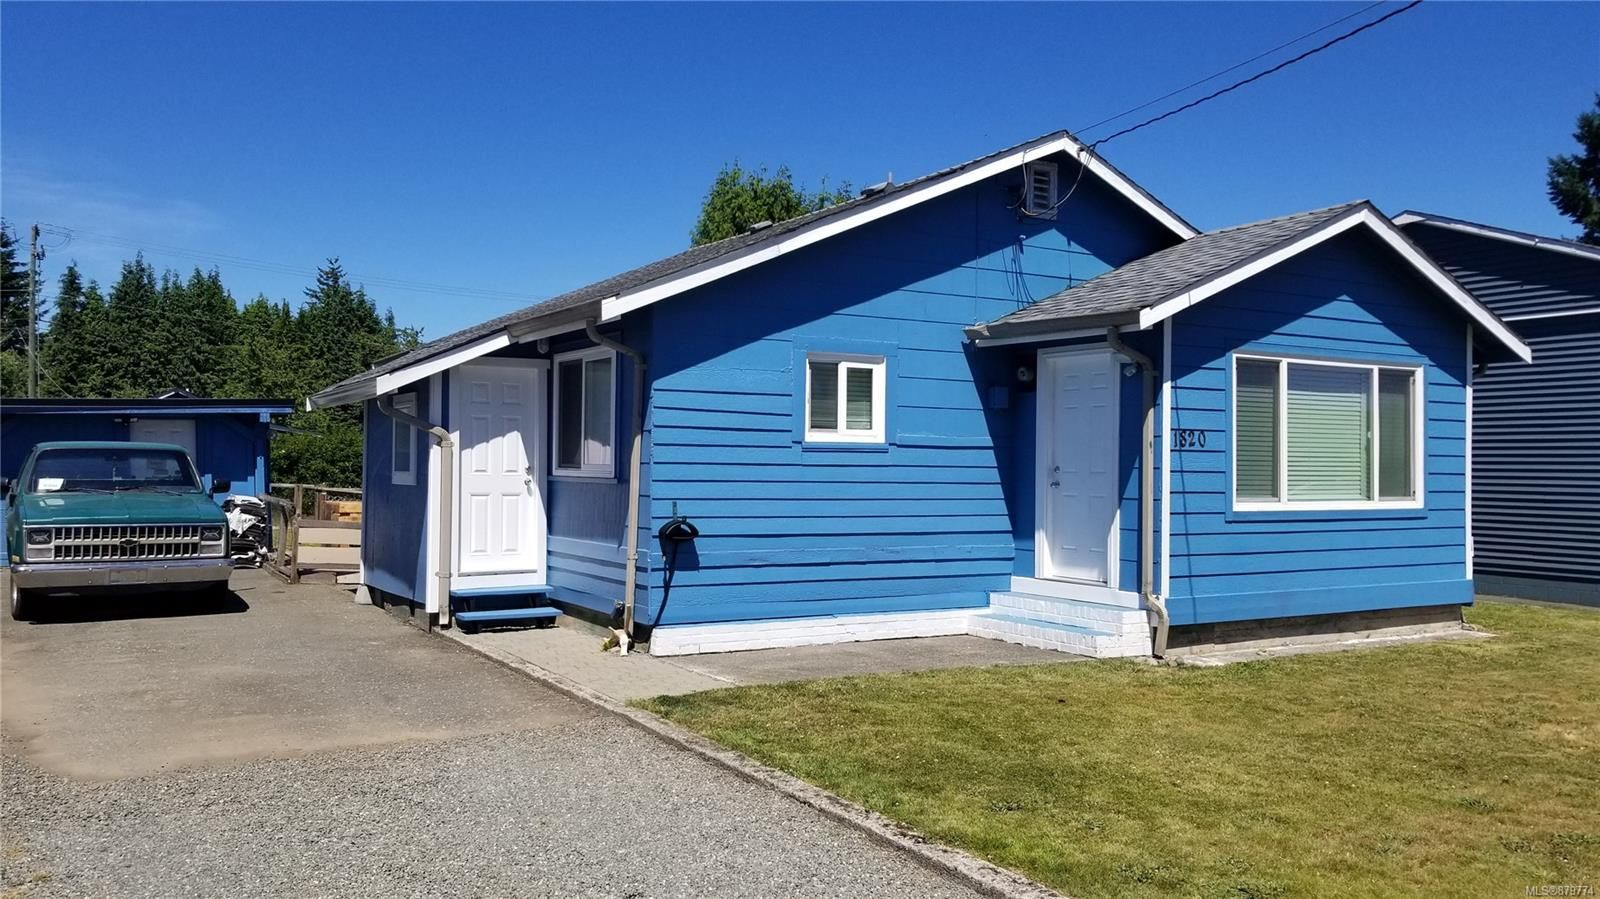 Main Photo: 1820 15th Ave in Campbell River: CR Campbellton House for sale : MLS®# 879774